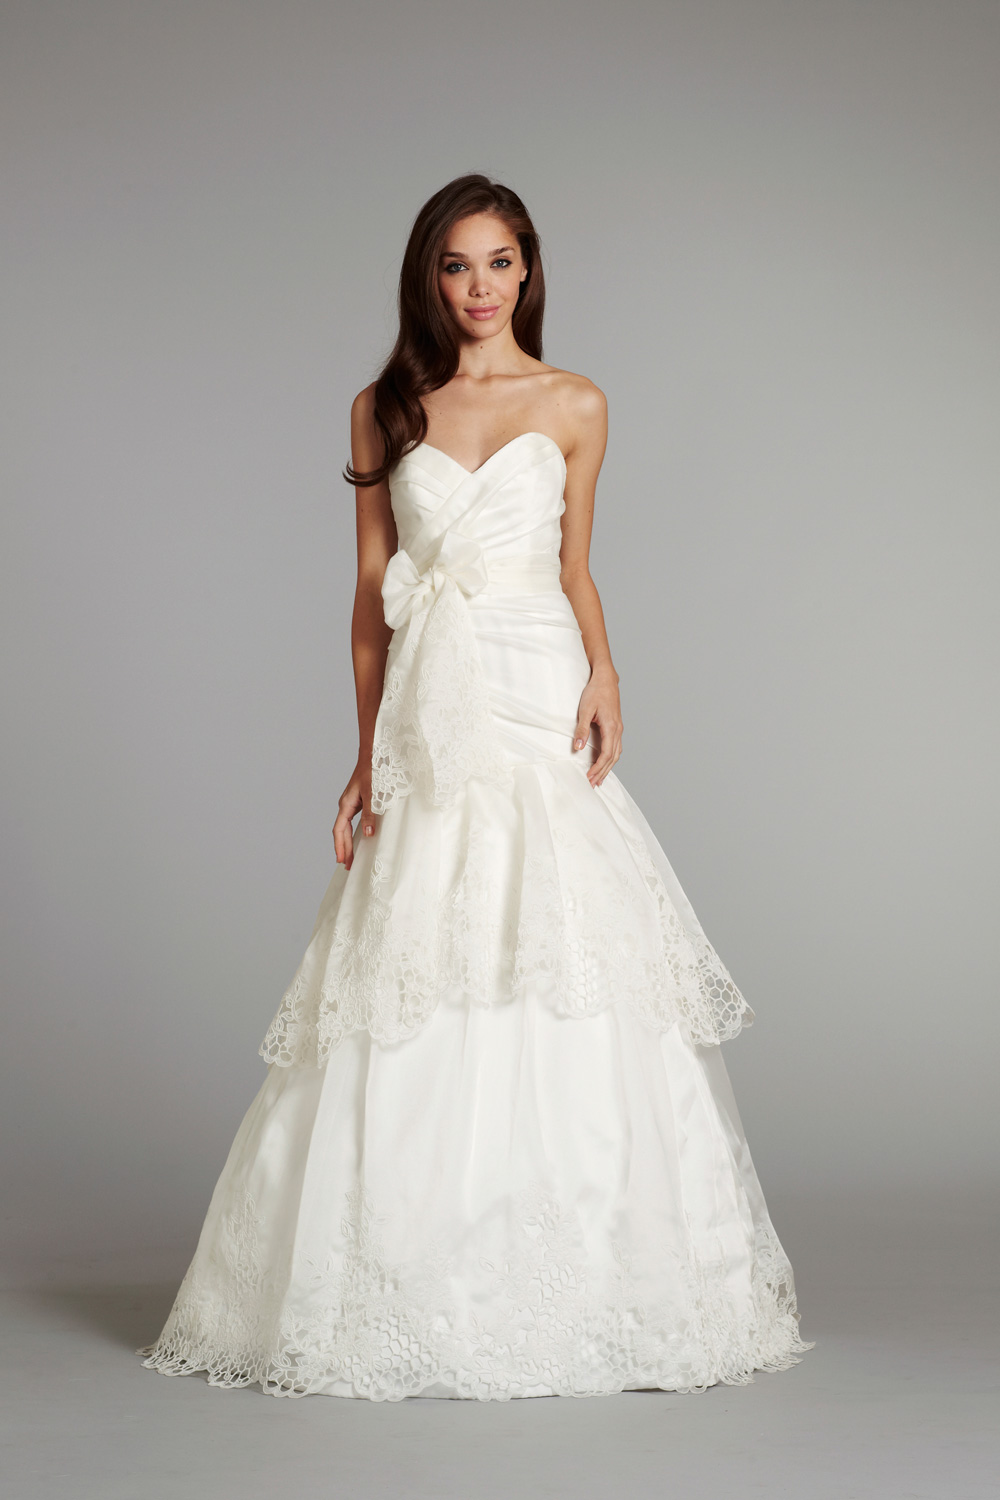 Bridal-gown-wedding-dress-jlm-hayley-paige-fall-2012-savannah-front.original